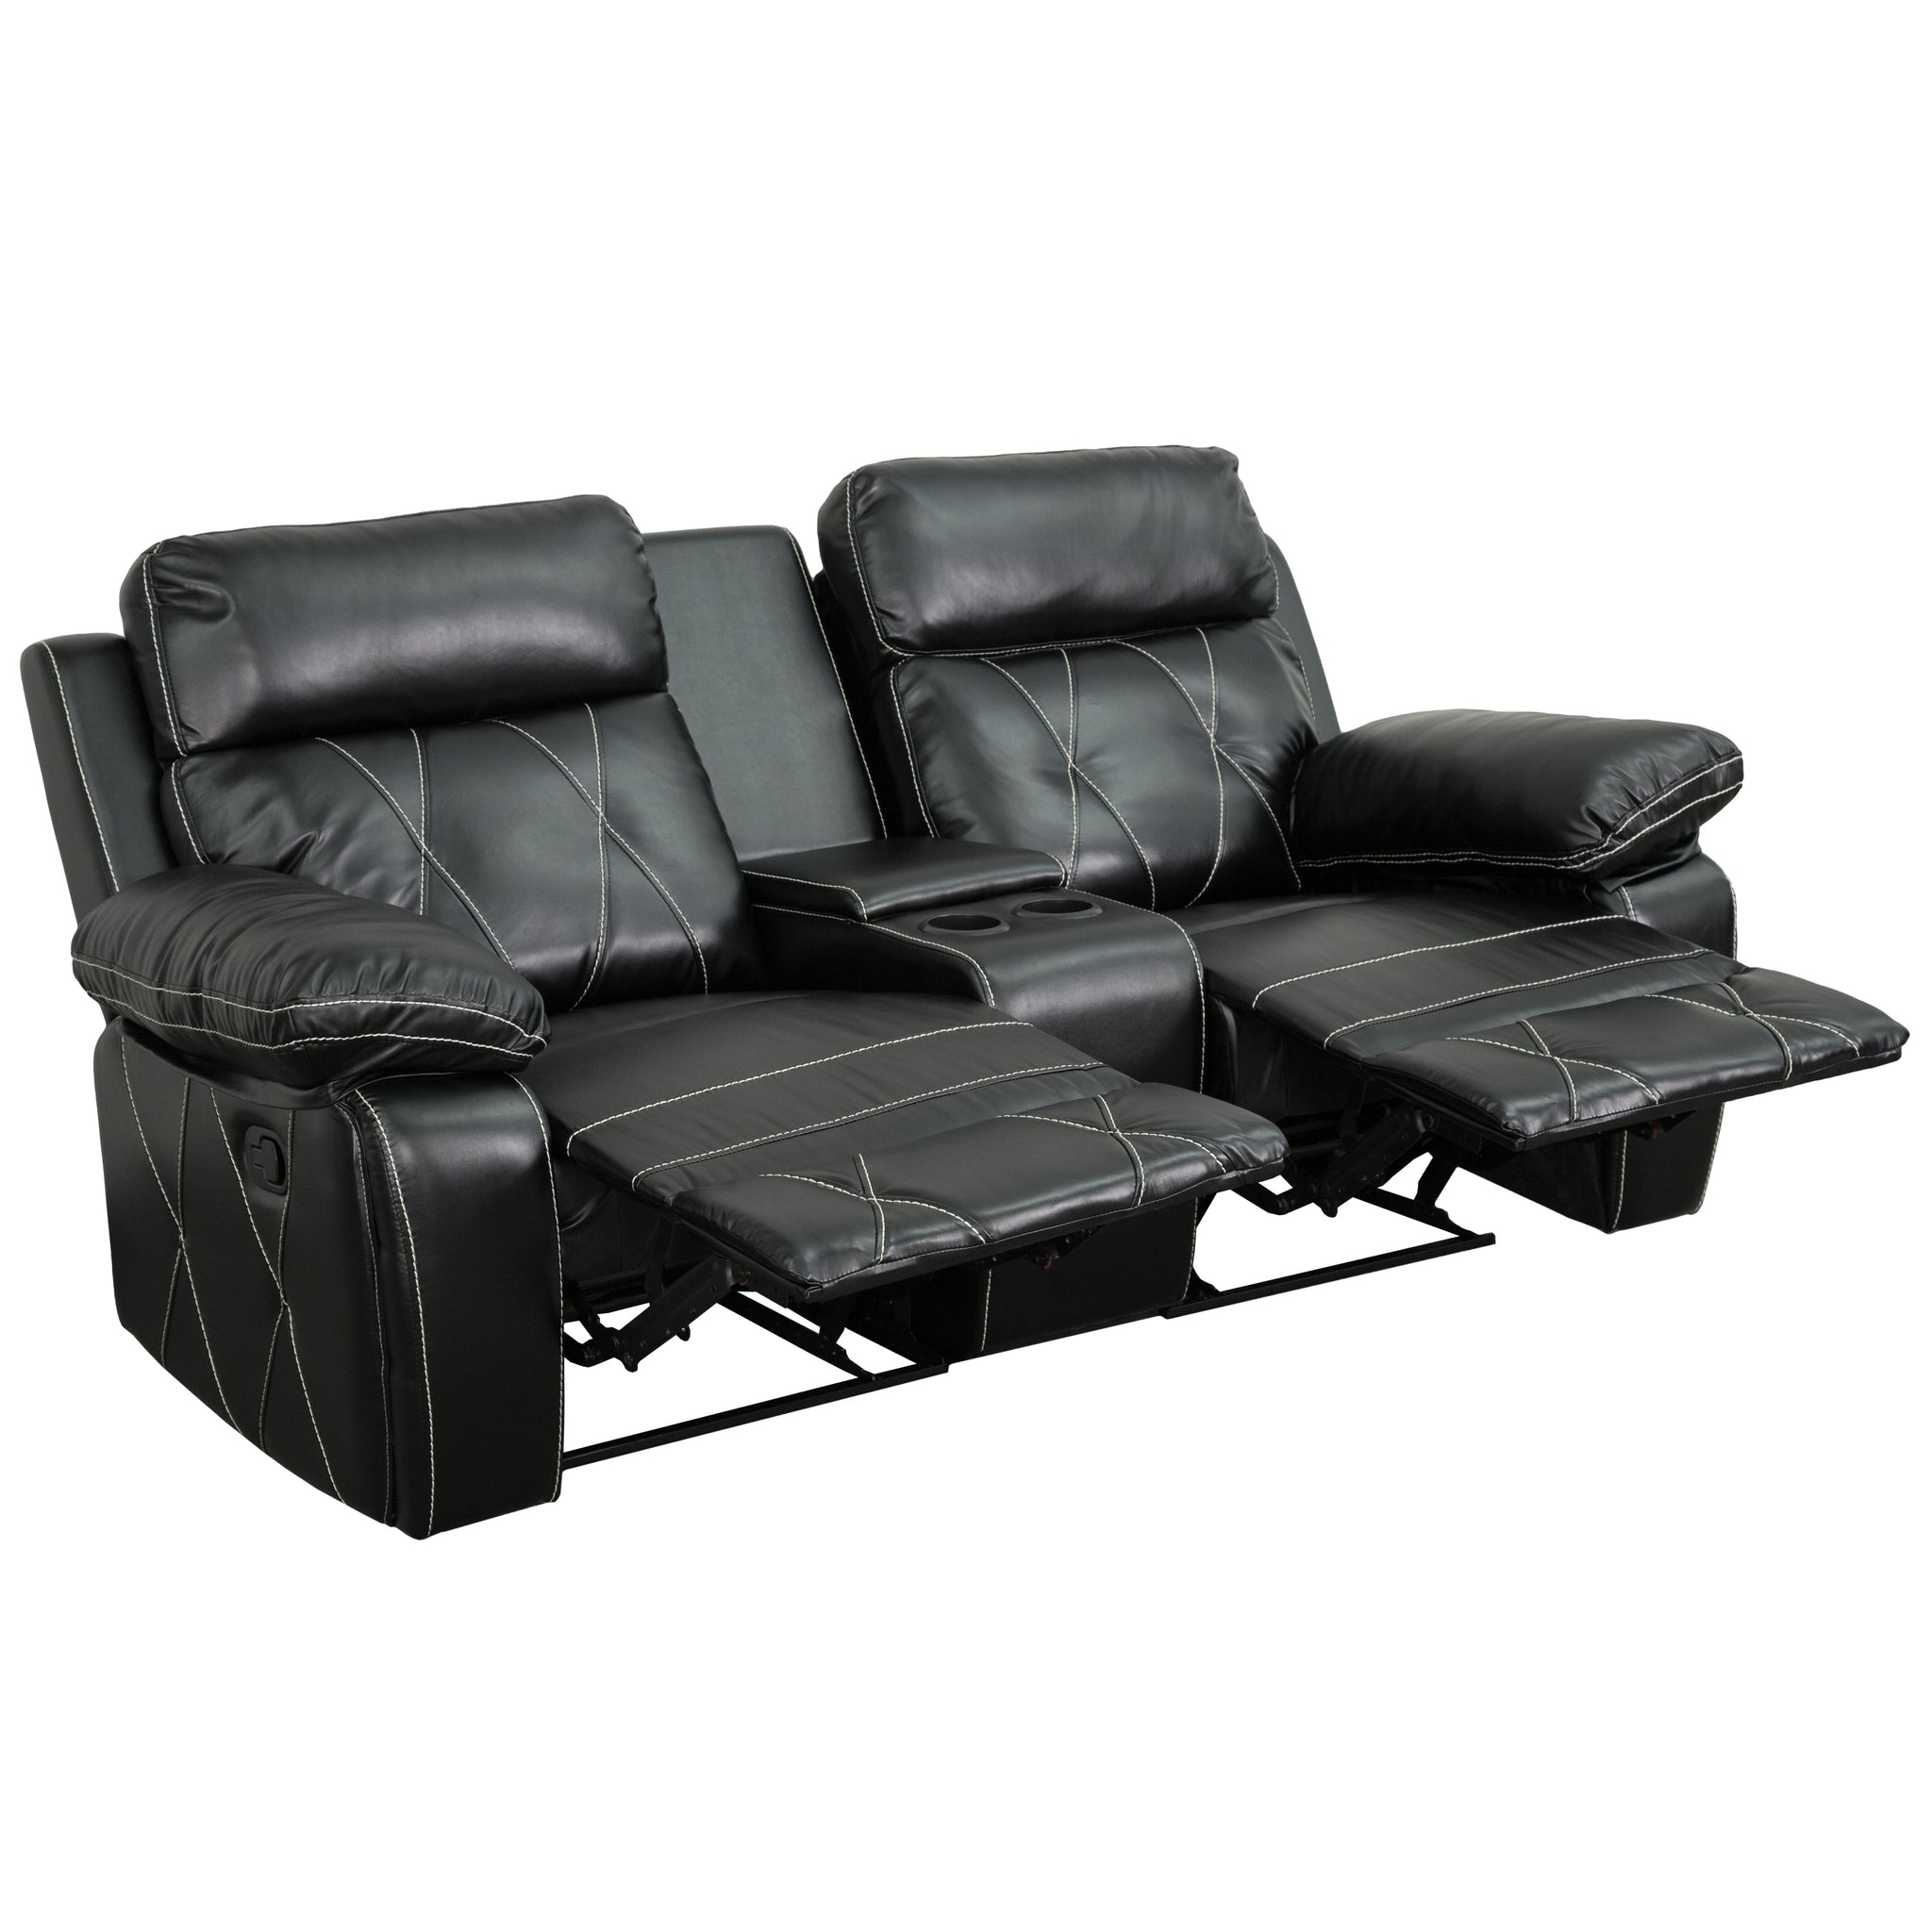 Reel Comfort Series 2-Seat Reclining Leather Theater Seating Unit with Straight Cup Holders: Black